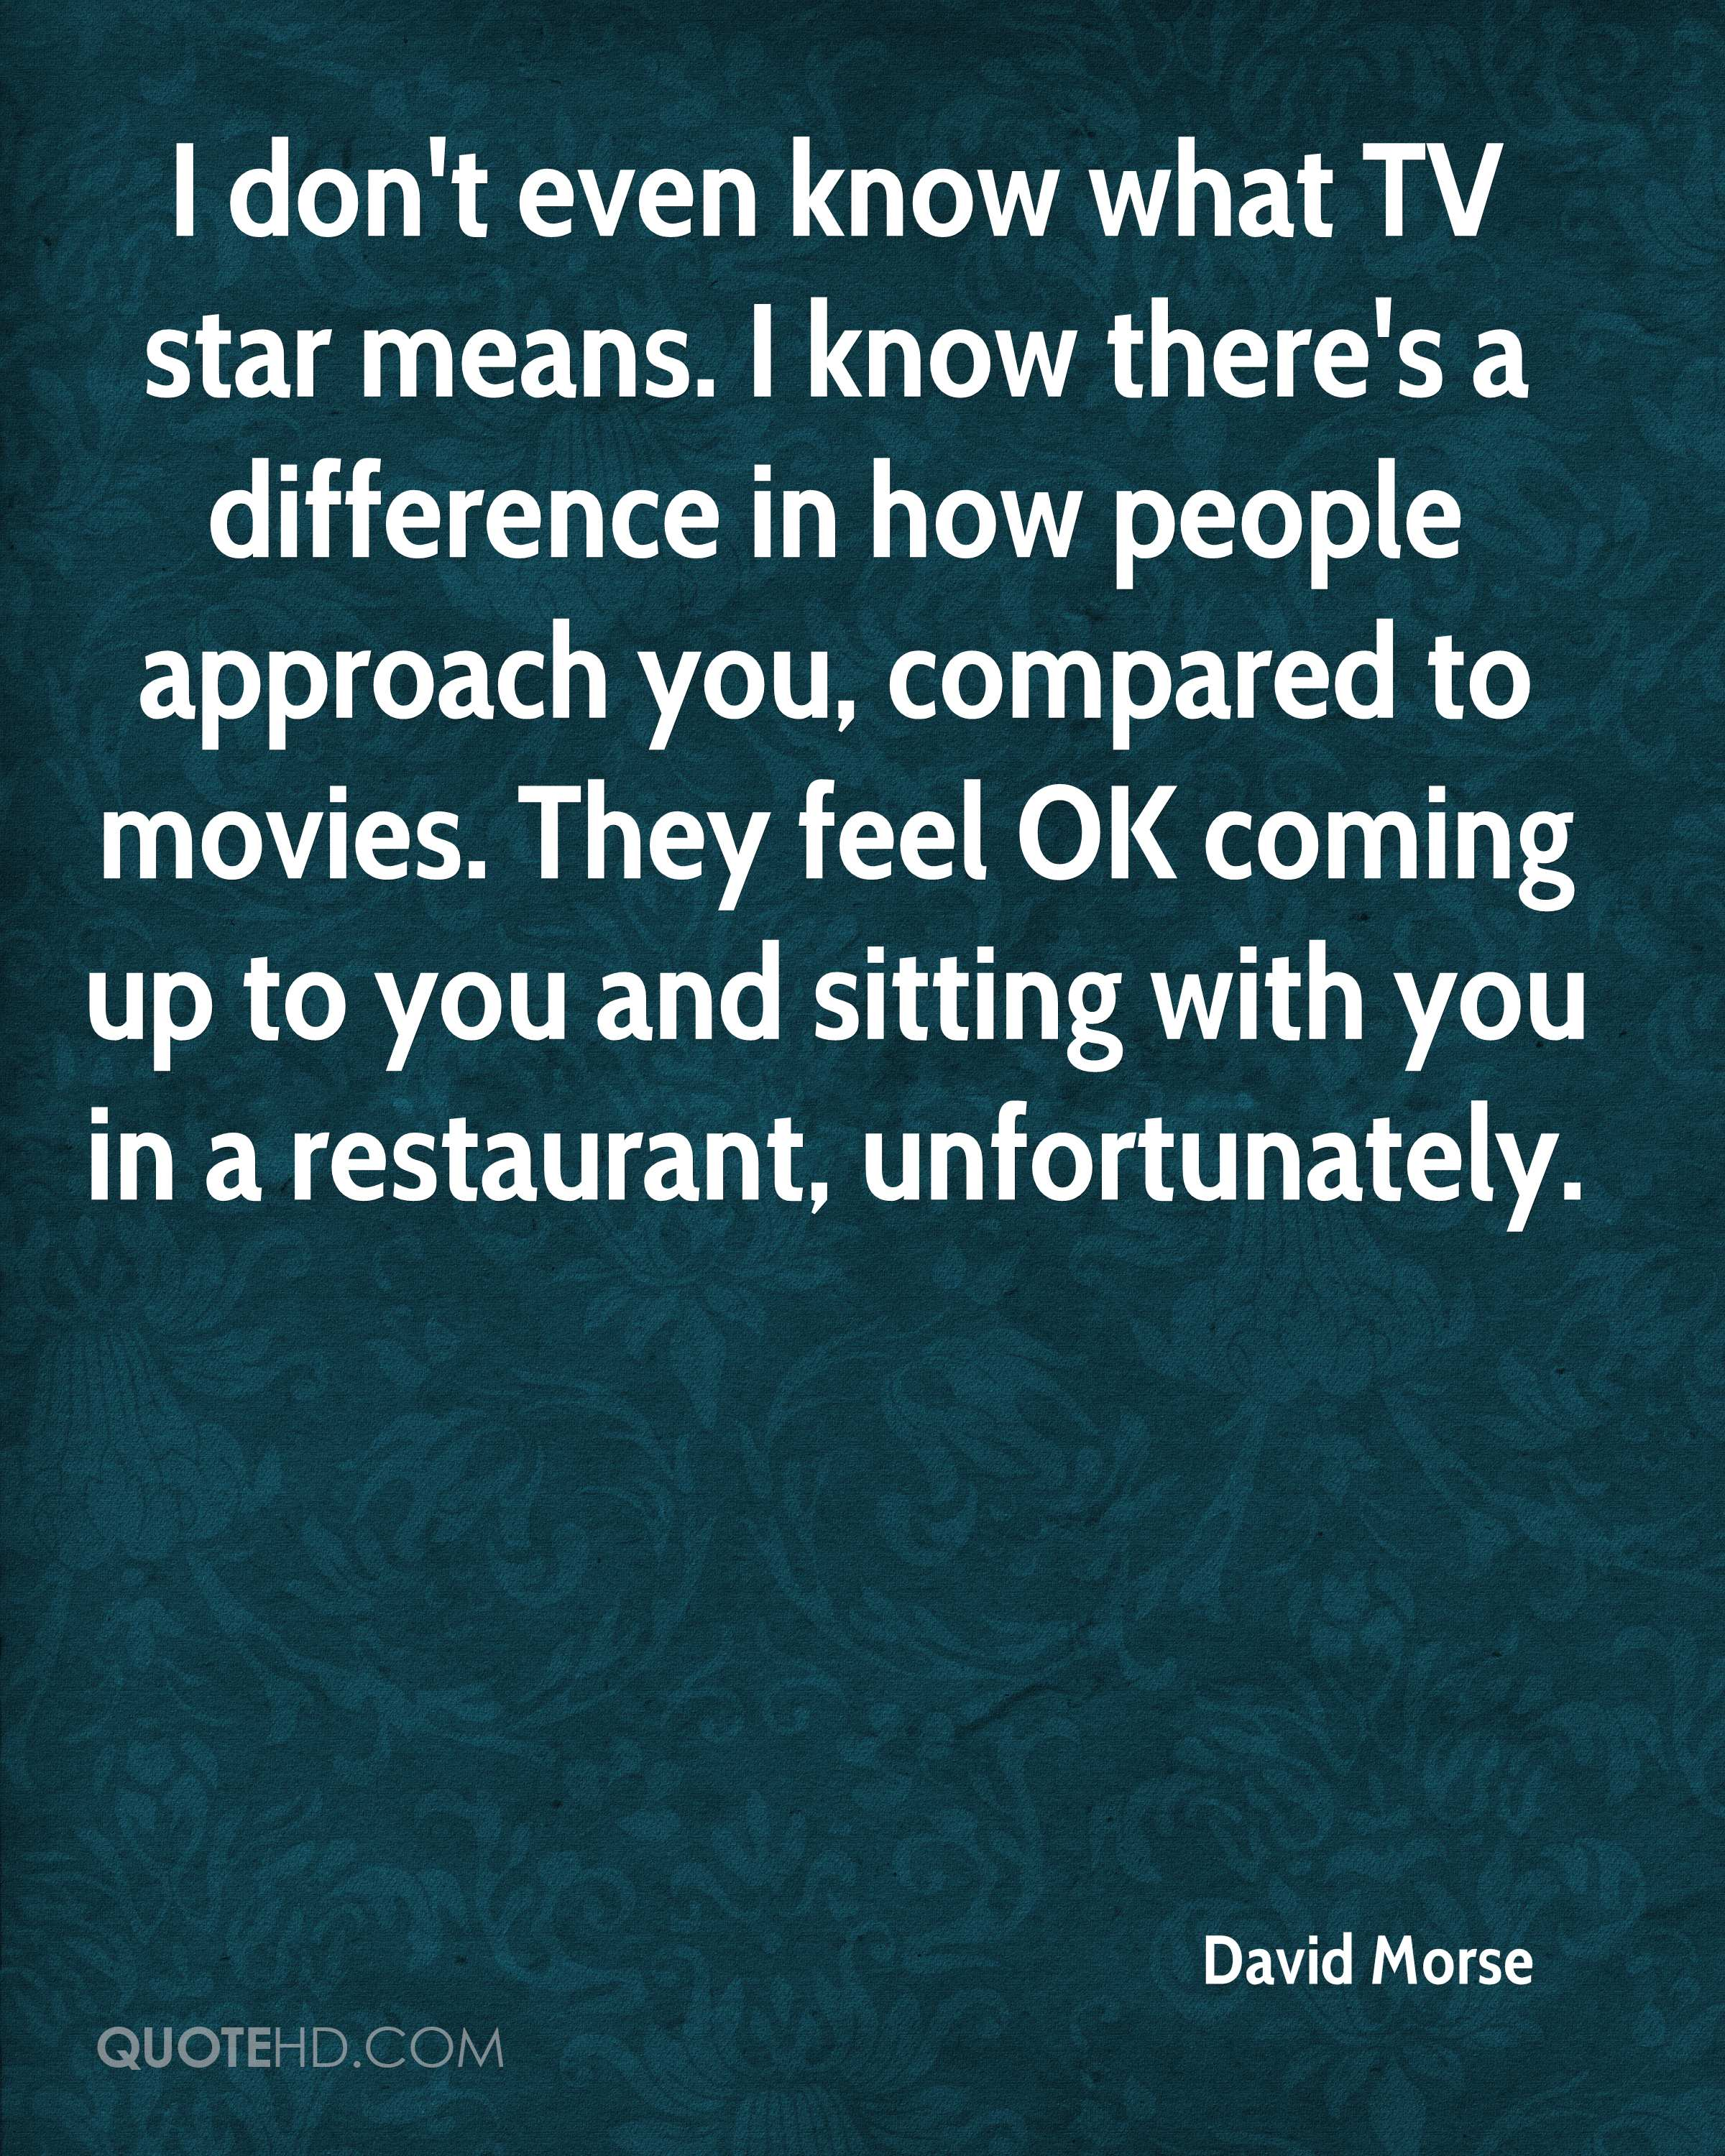 I don't even know what TV star means. I know there's a difference in how people approach you, compared to movies. They feel OK coming up to you and sitting with you in a restaurant, unfortunately.